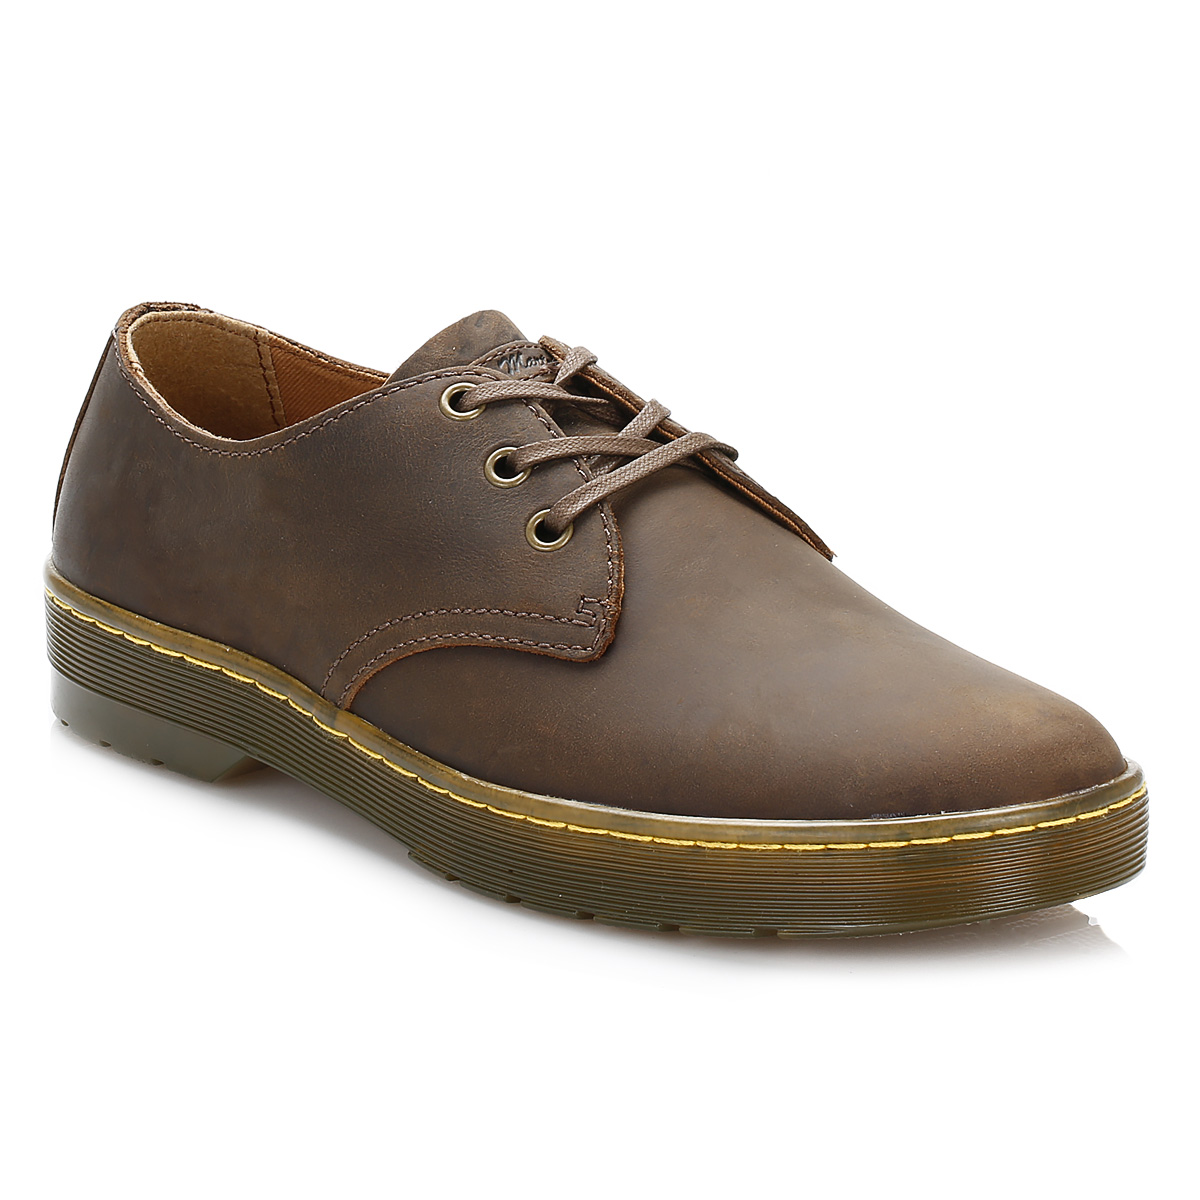 Brown Tan Leather Smart Casual Shoes